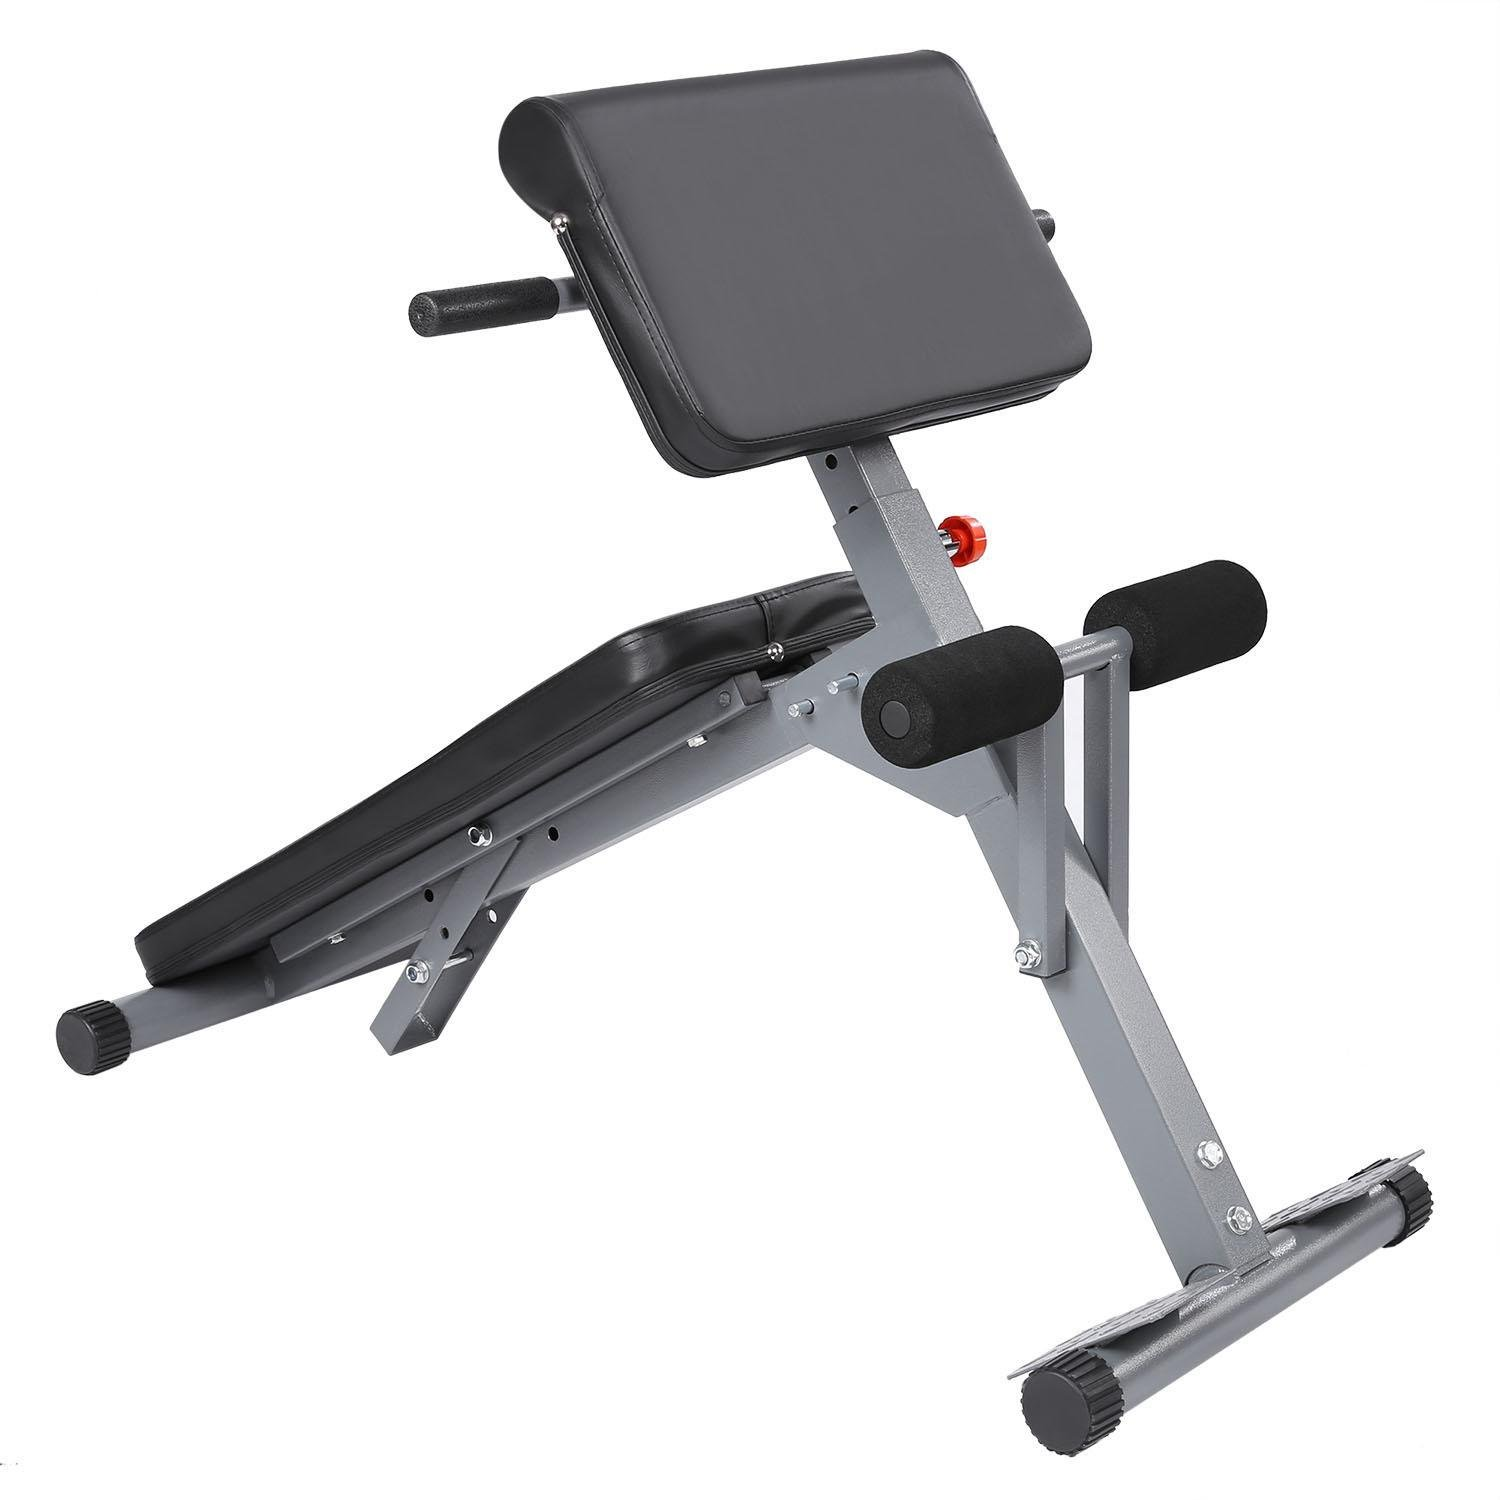 (US Stock) Pro Ab/Hyper Exercise Bench Roman Chair, Adjustable Fitness Multi-function Core Strength Bench